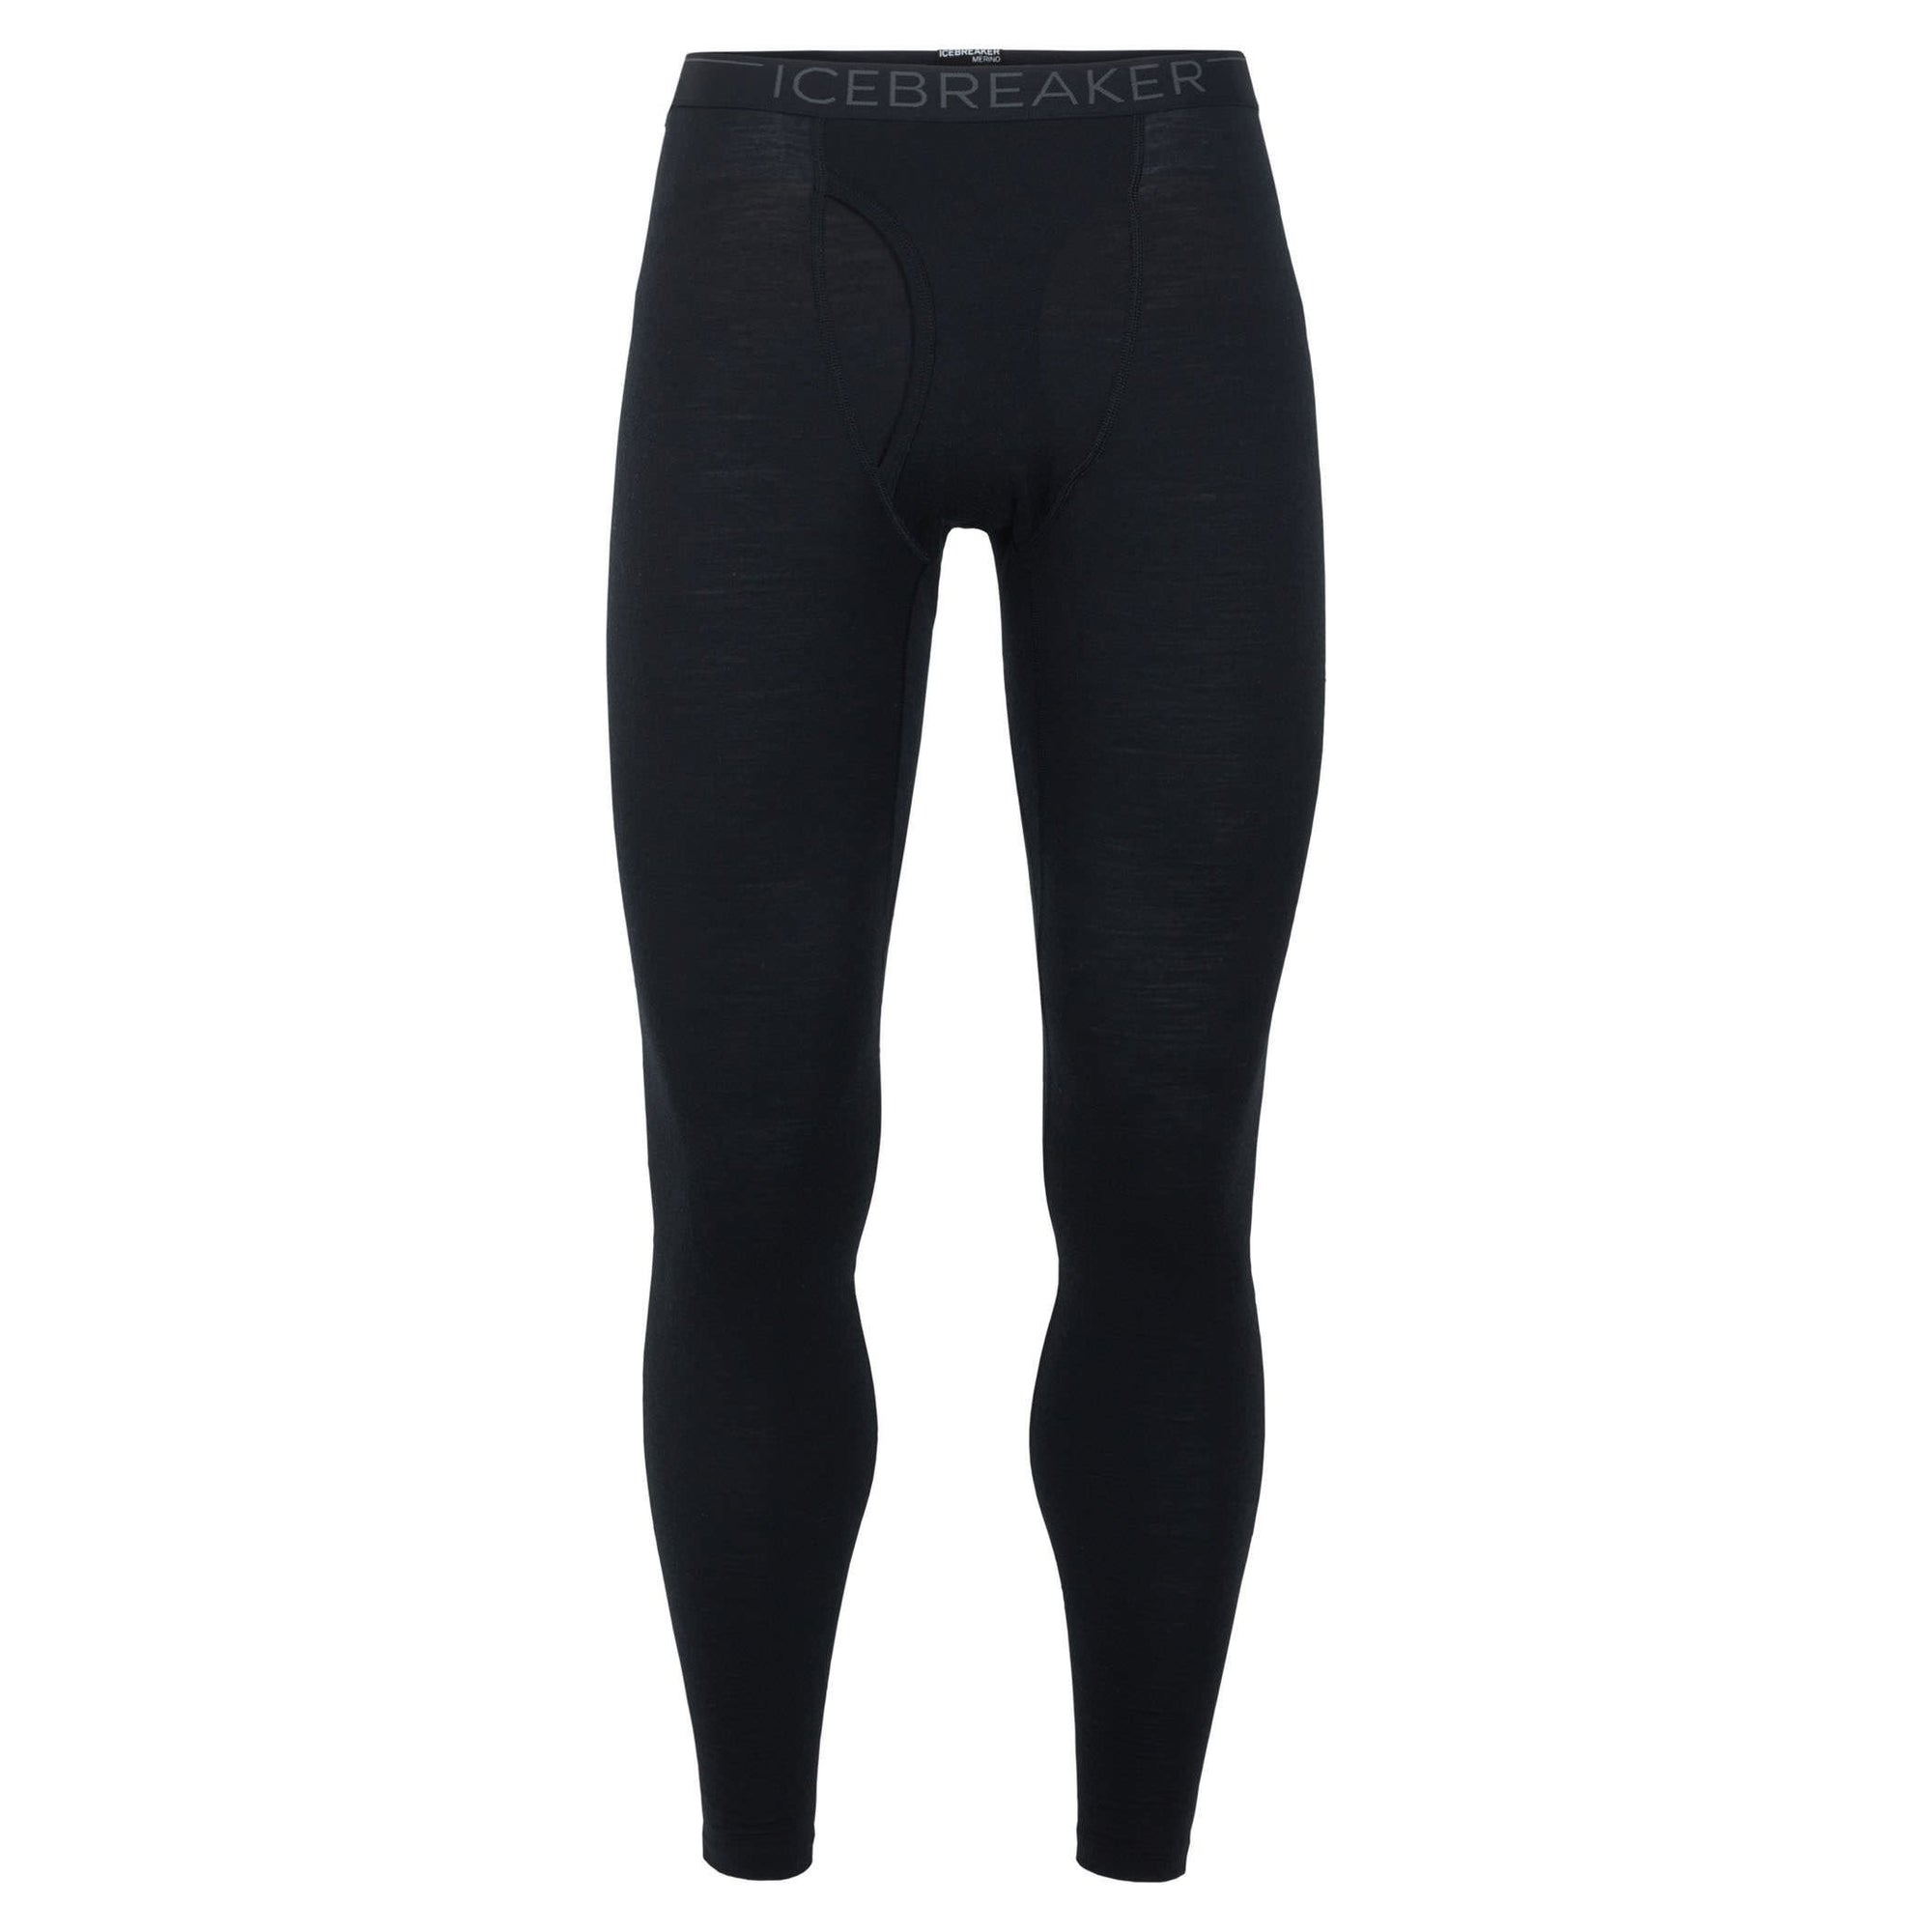 Icebreaker 2020 Men's 200 Oasis Leggings w/Fly Baselayer